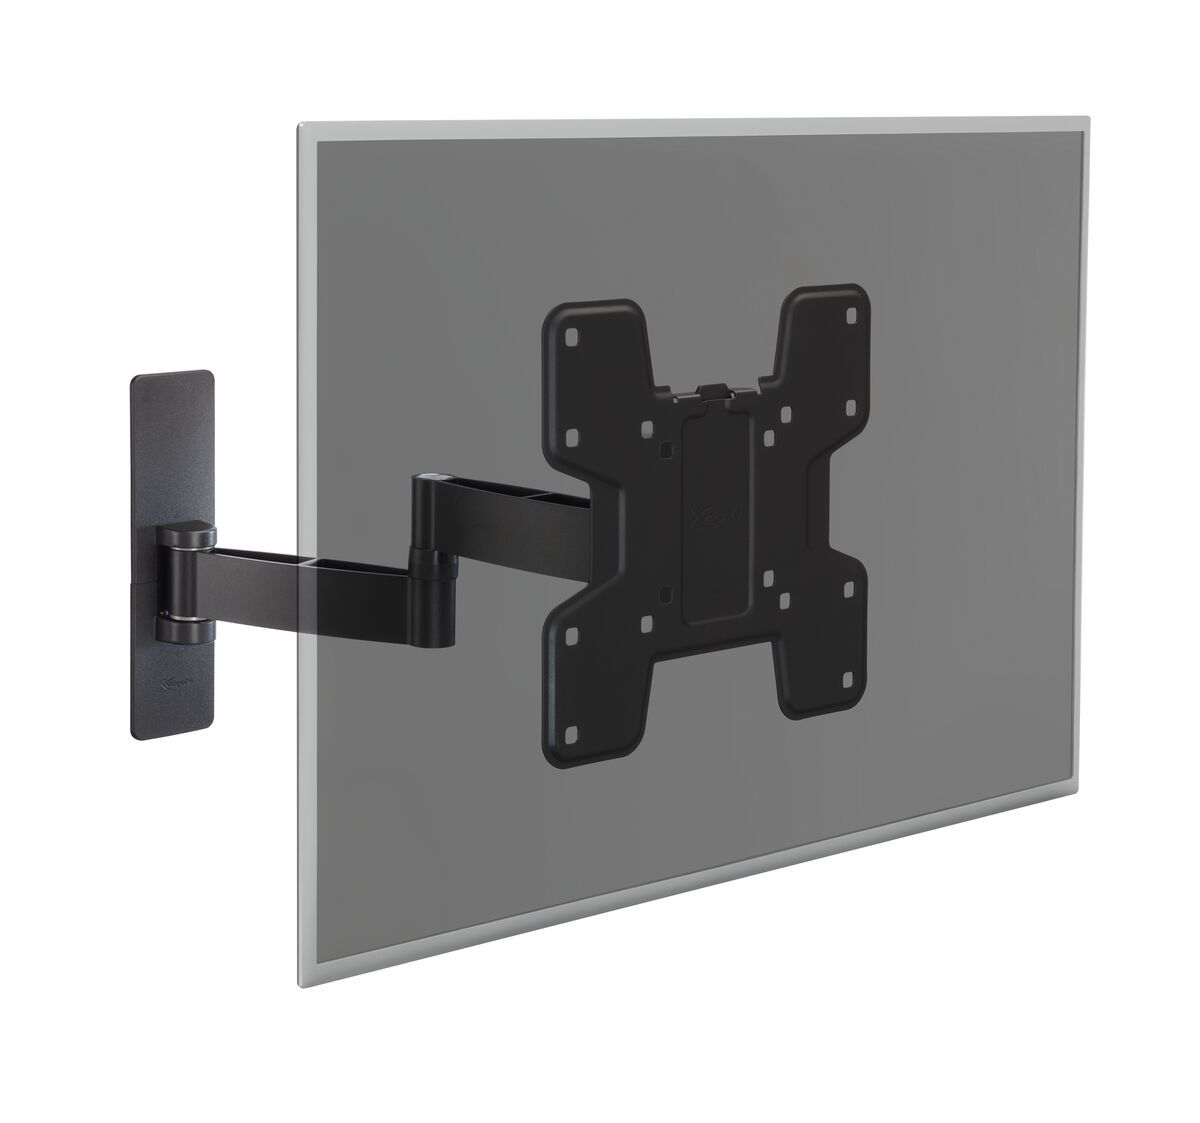 Vogel's PFW 2040 Display wall mount turn & tilt - Application